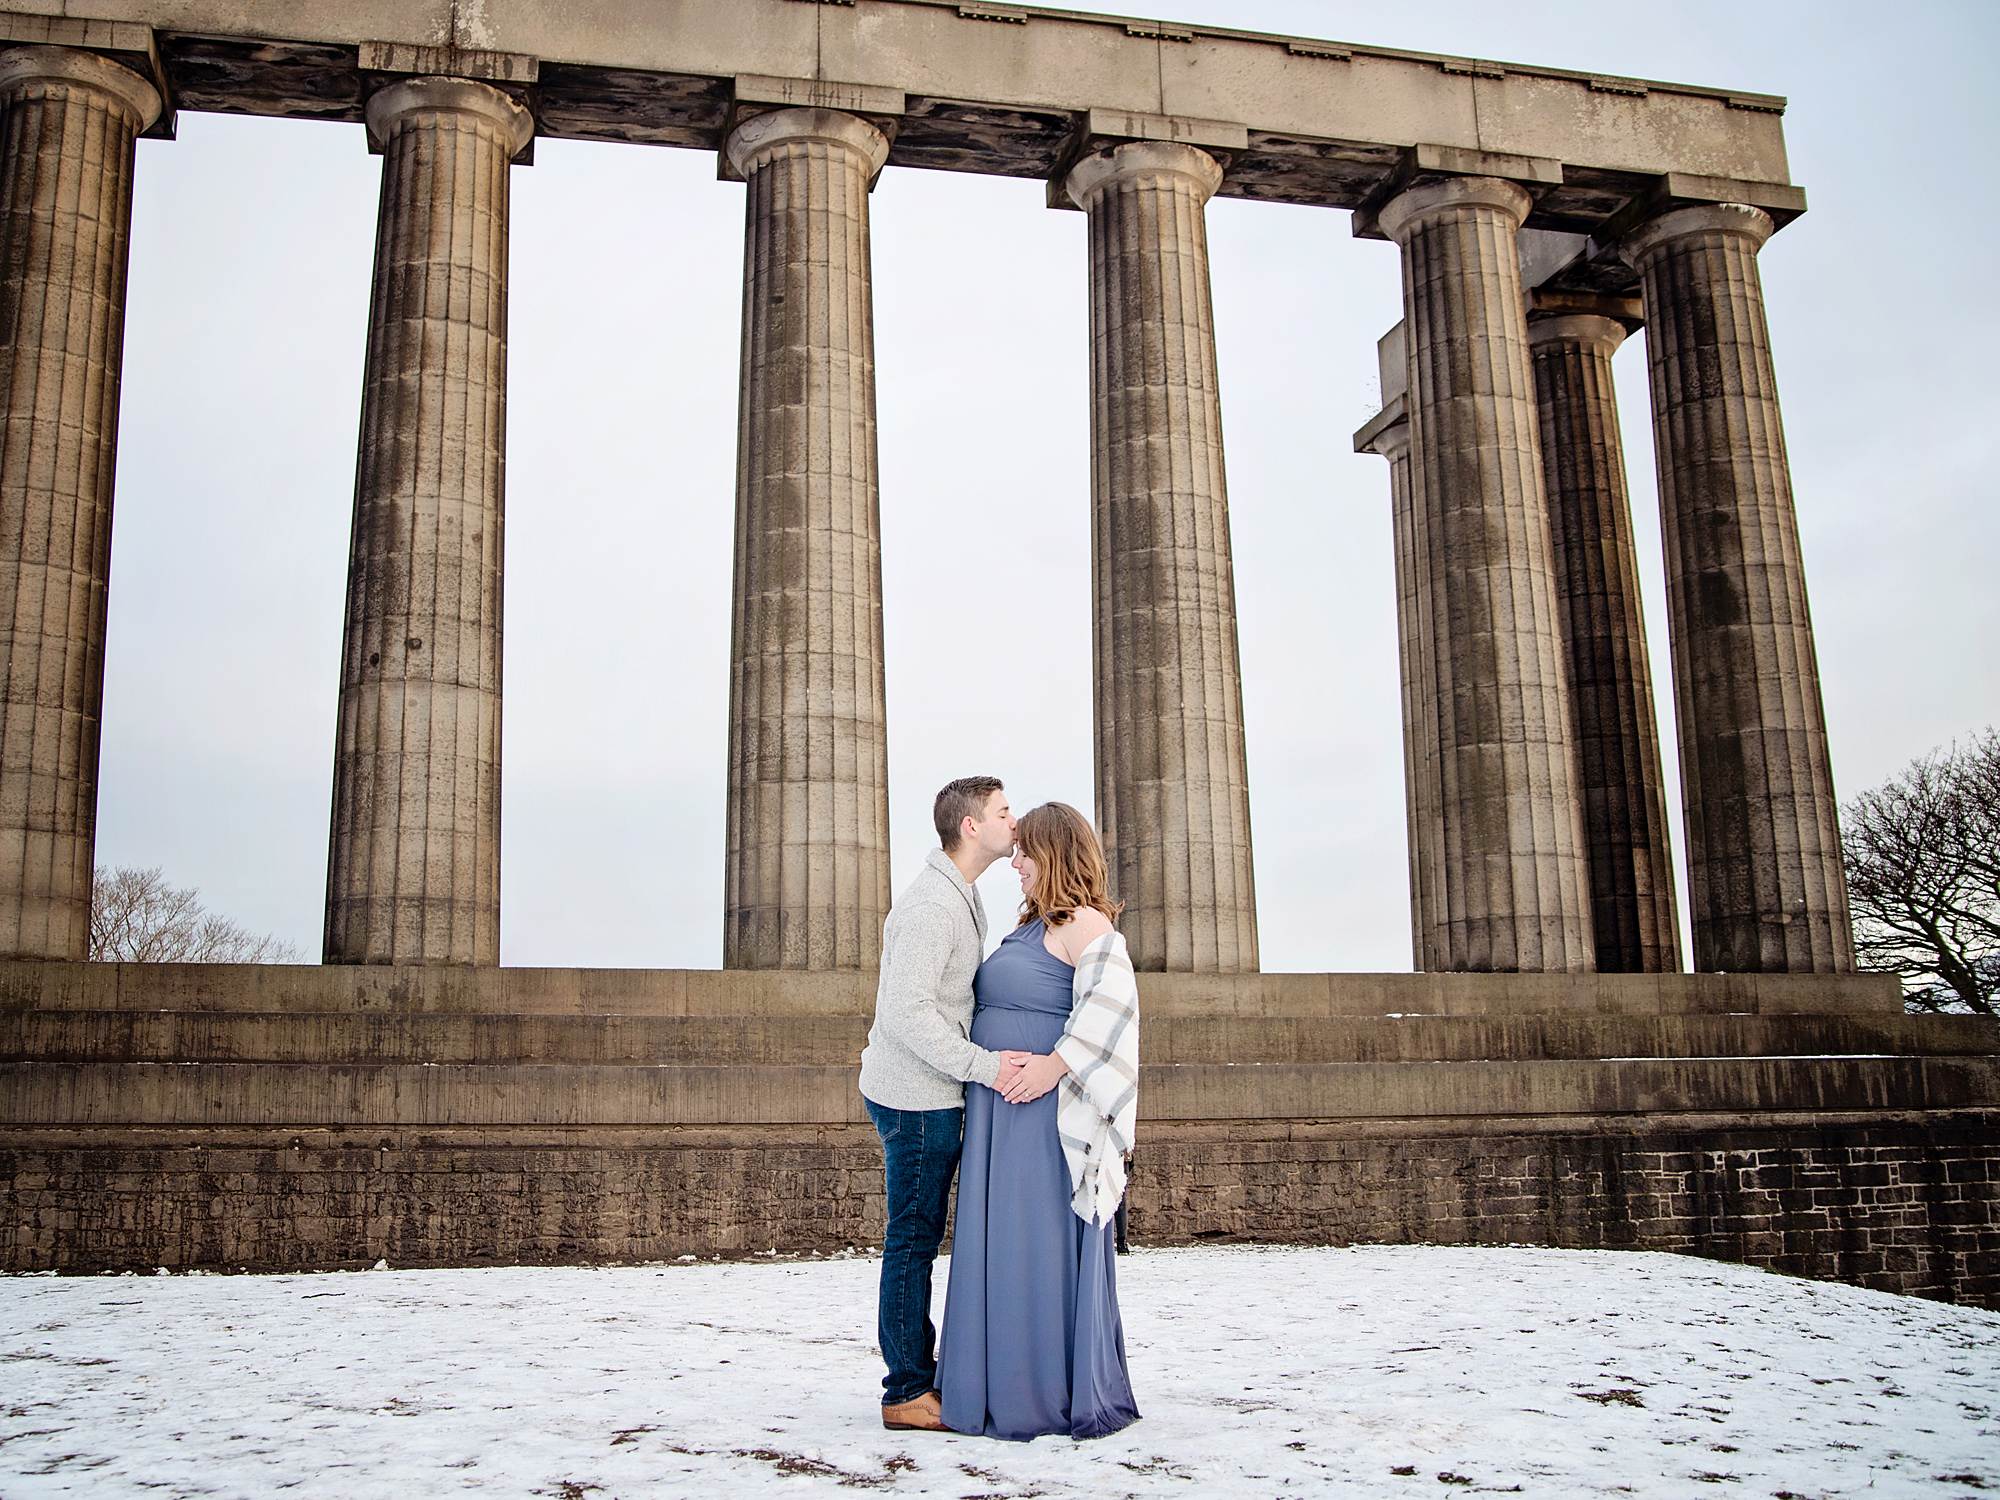 calton hill edinburgh pregnancy maternity photography edinburgh midlothian